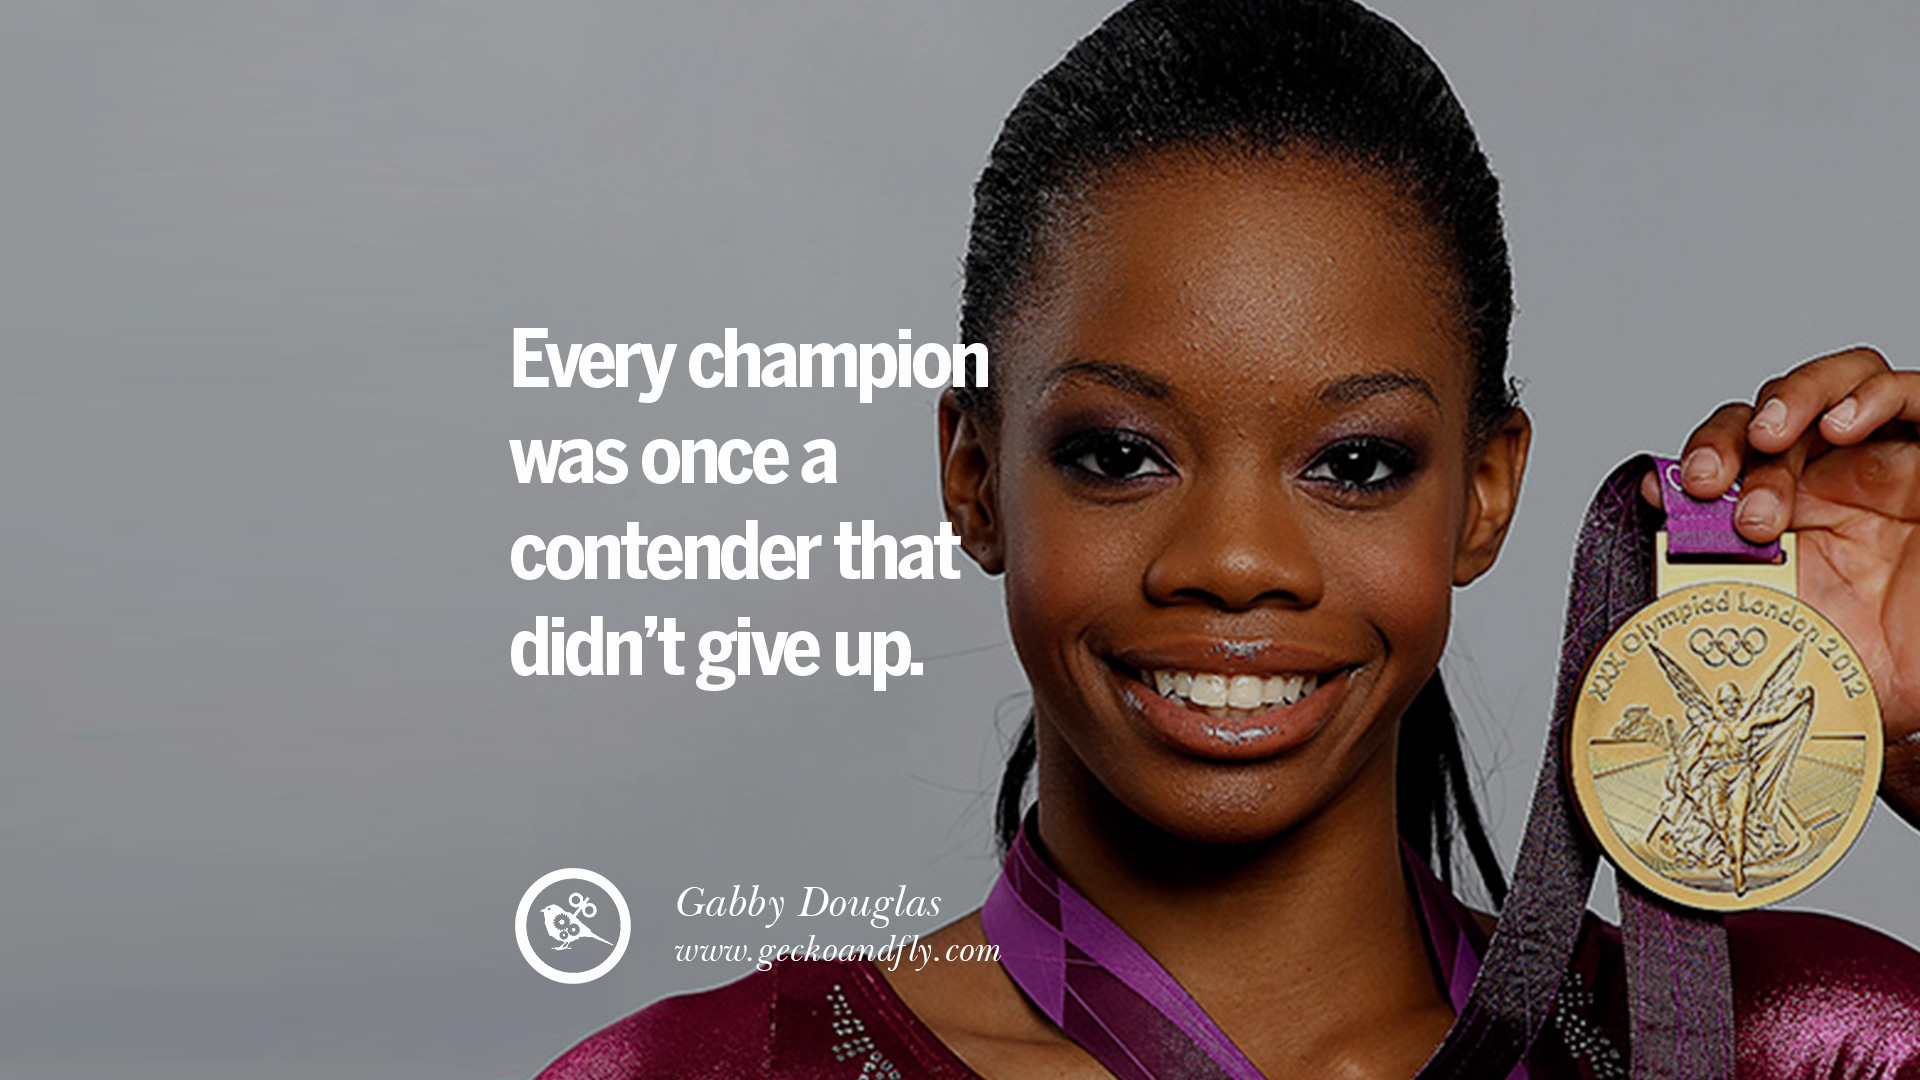 31 Inspirational Quotes By Olympic Athletes On The Spirit Of ...